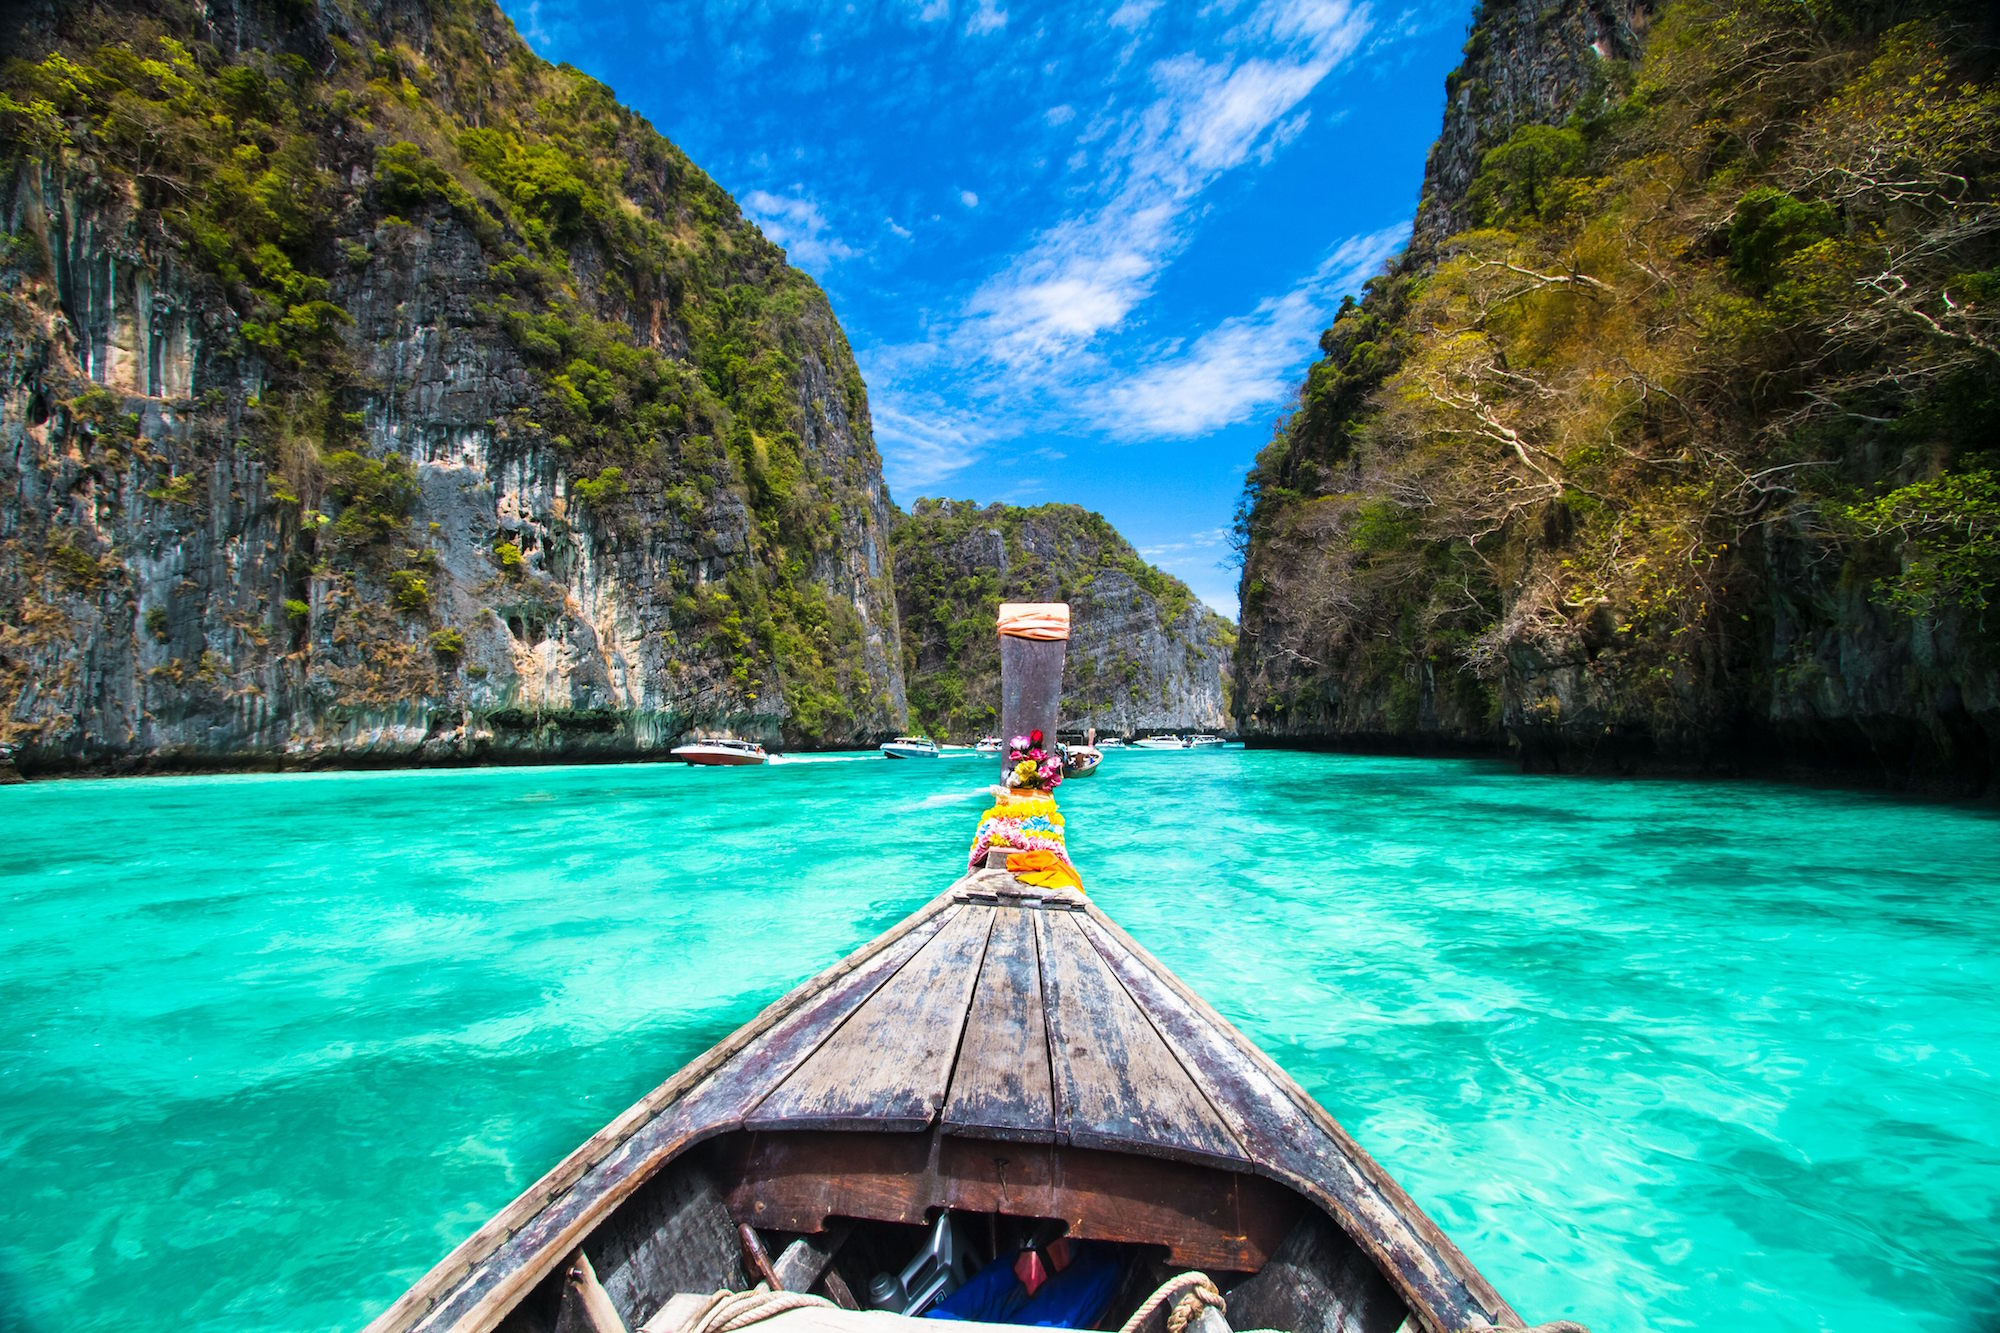 First trip to Thailand? Here are some expert tips to remember